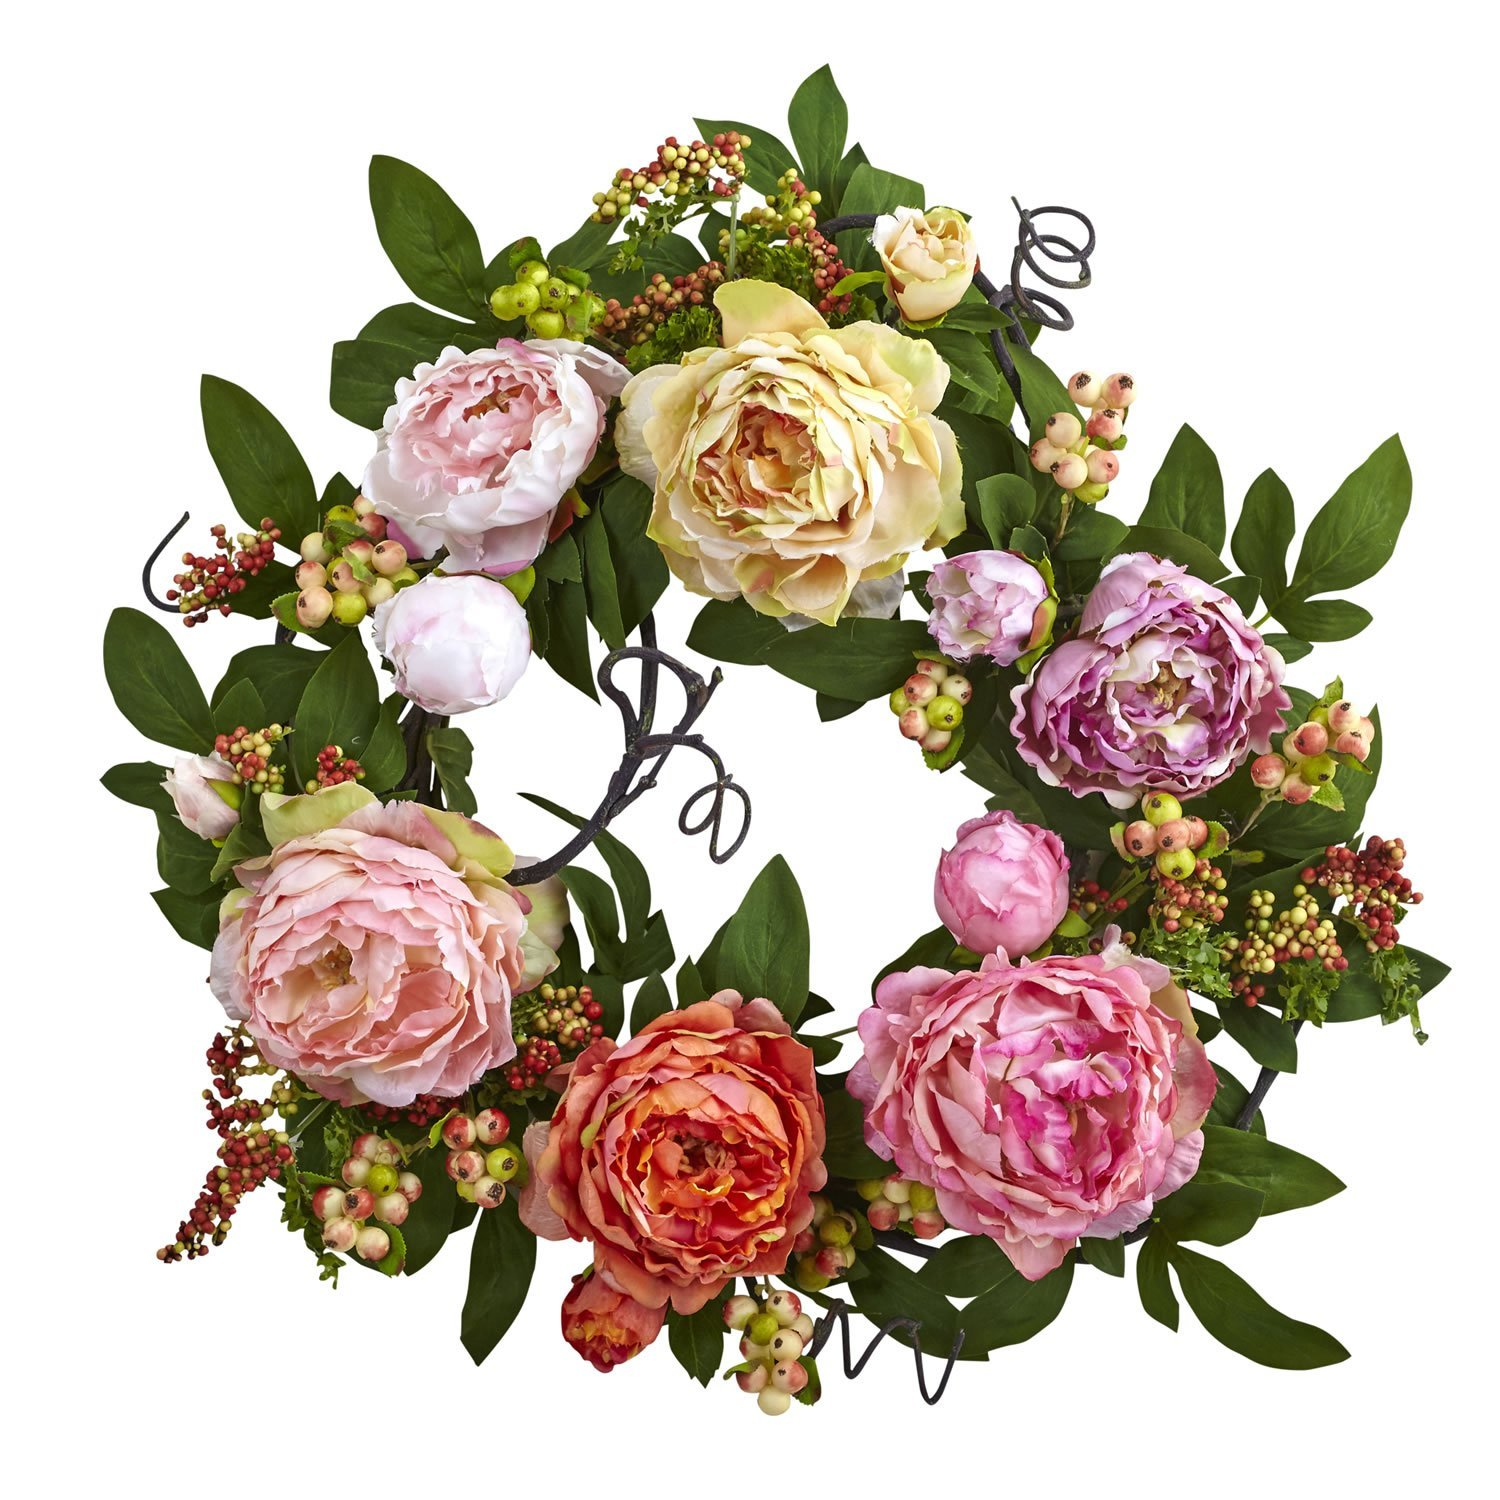 Mixed Peony /& Berry Wreaths Assorted Nearly Natural 4537 20in